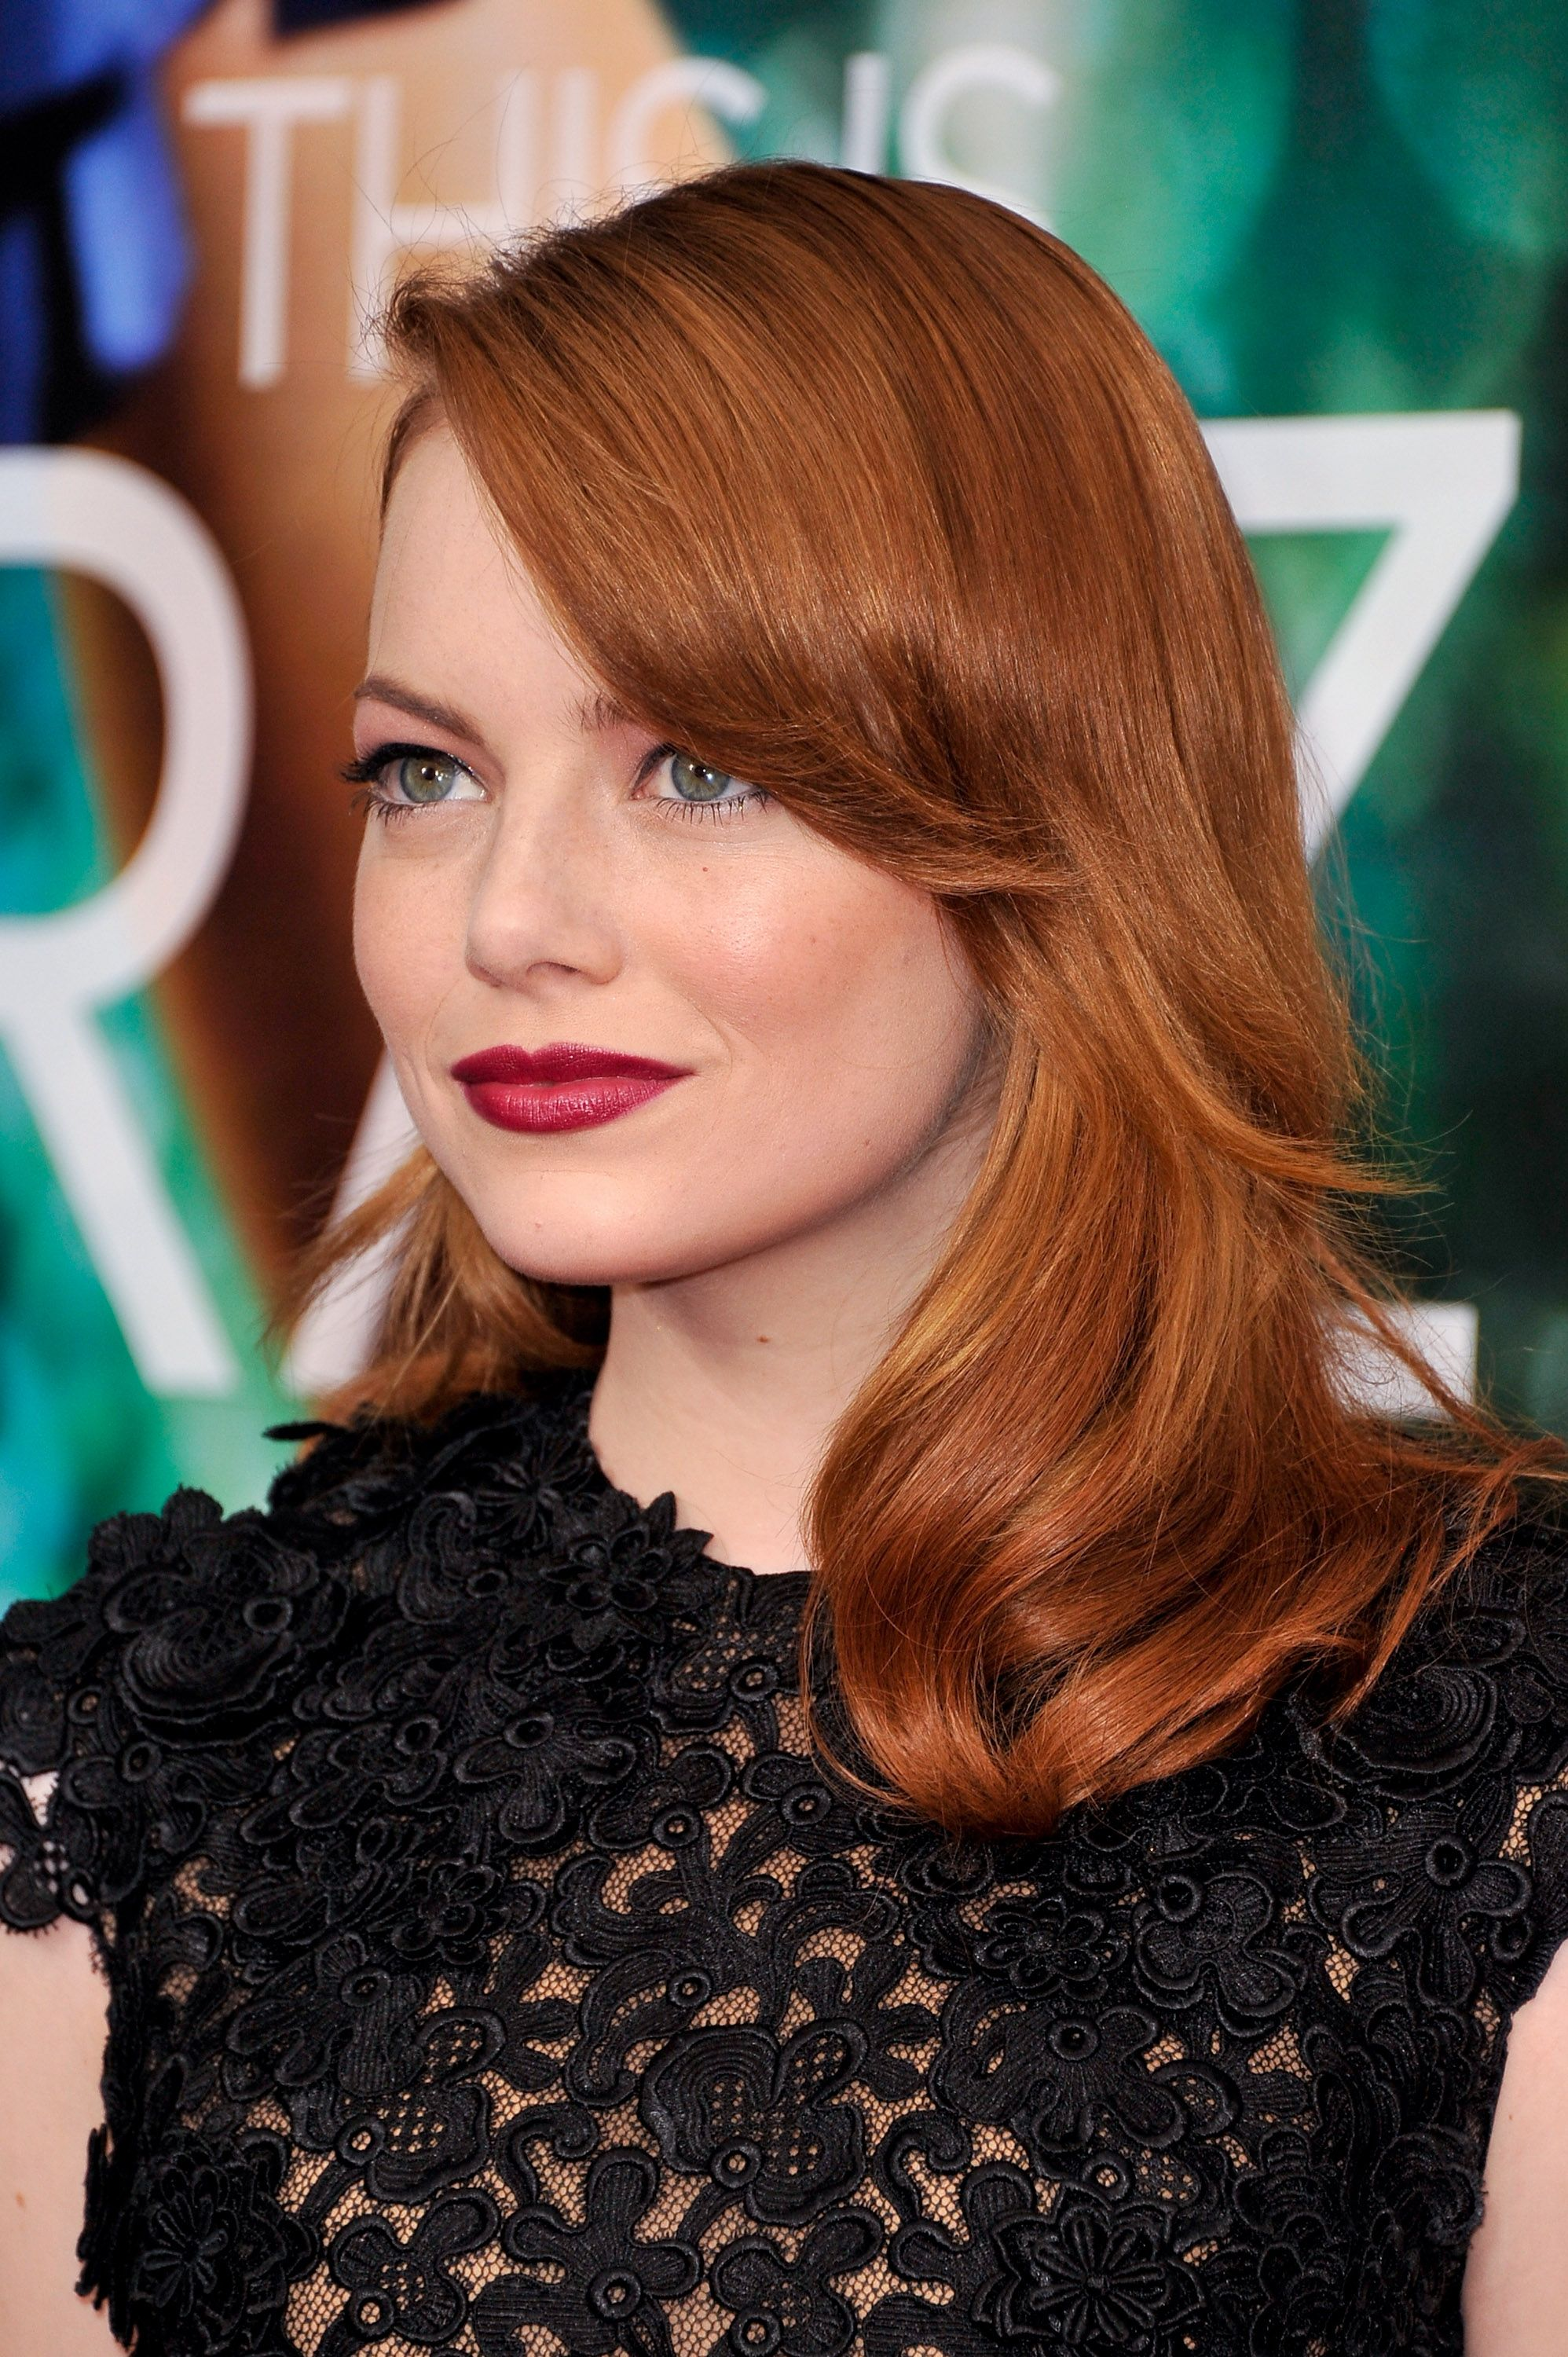 The Best Lipstick for Redheads: A Guide to Choosing the PerfectShade